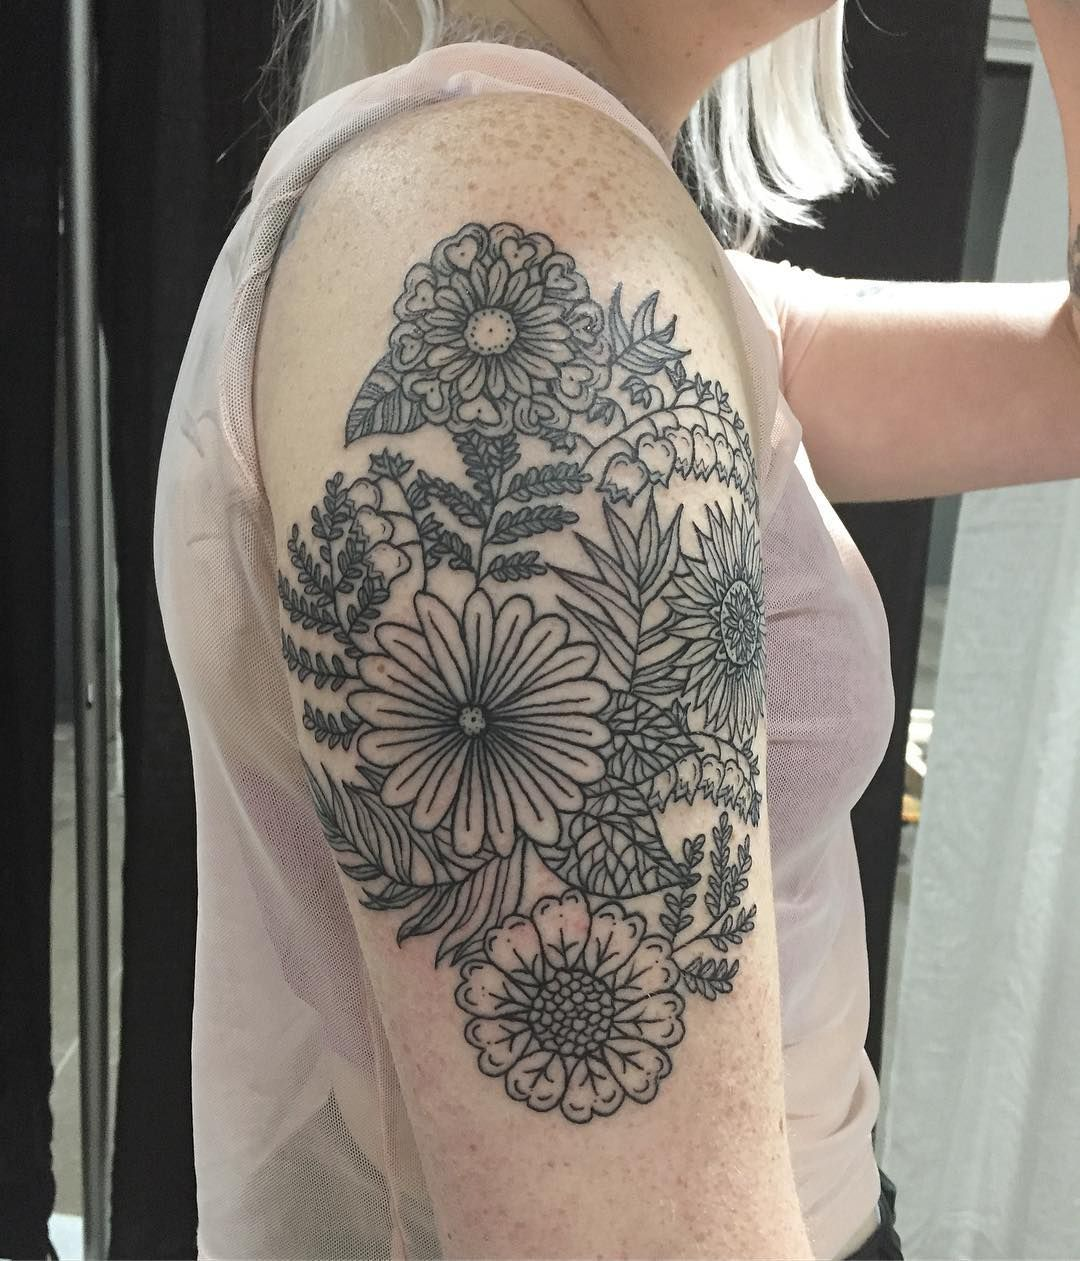 1970's inspired floral design on Alissa. Thank you